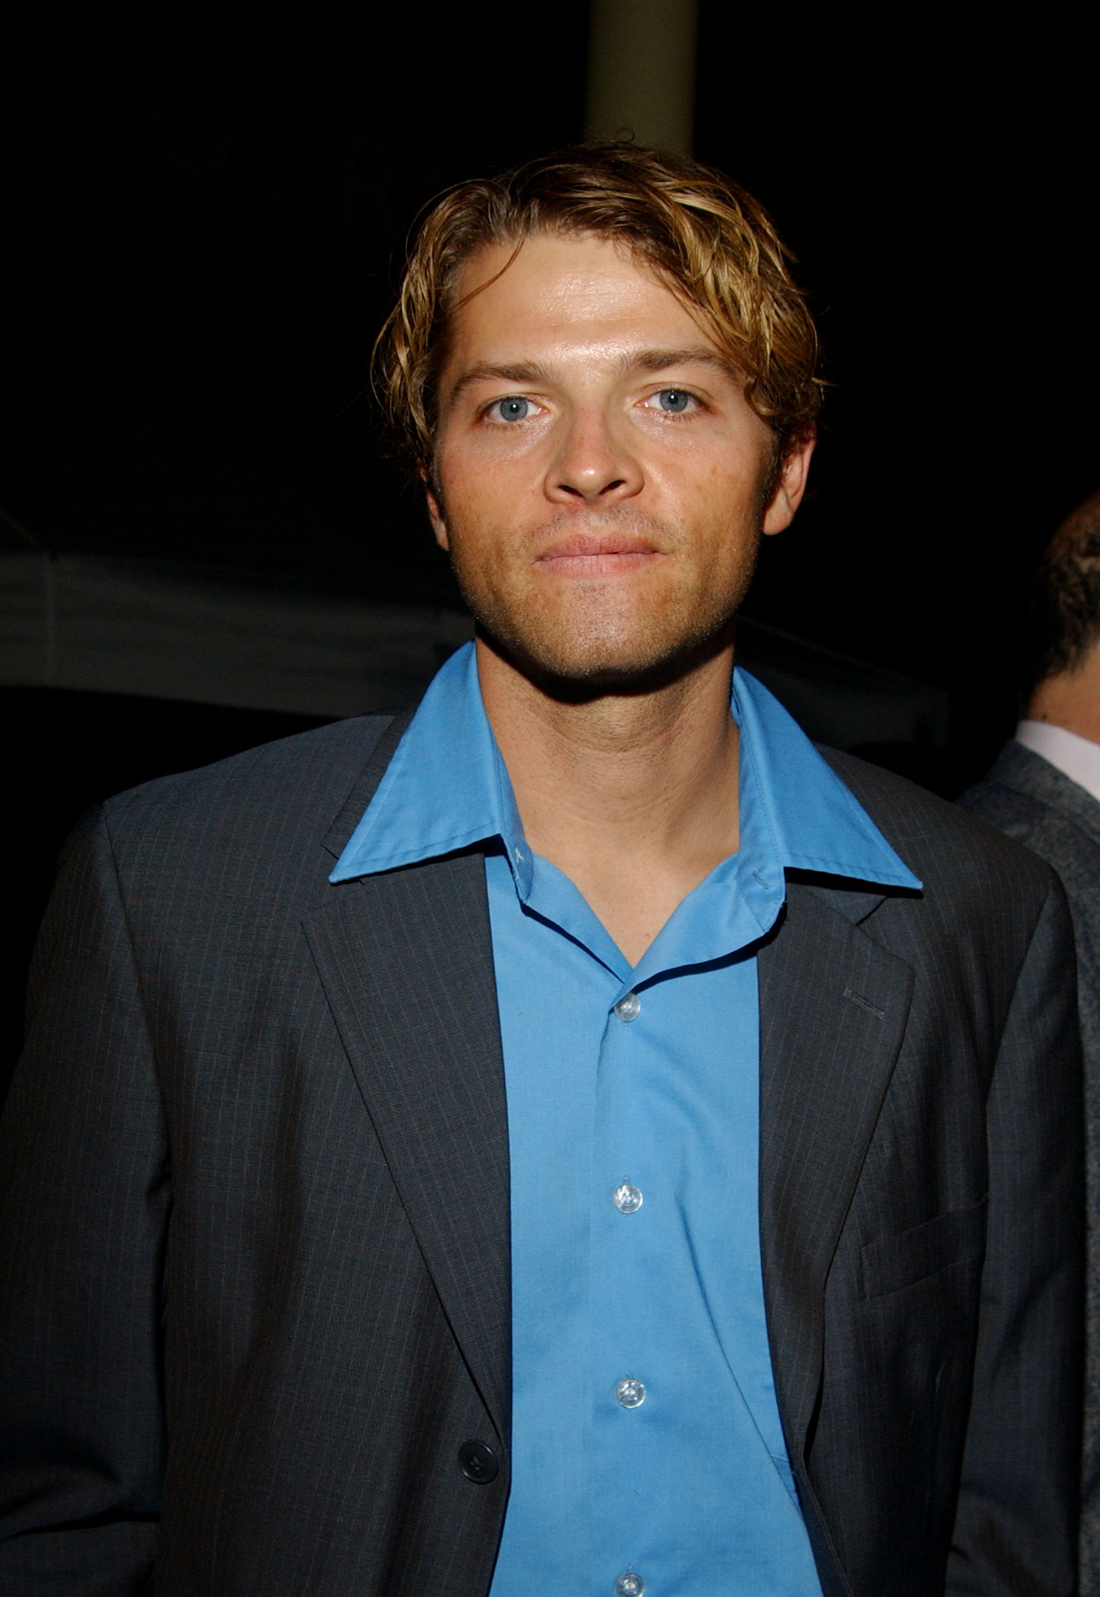 misha collins Jensen ackles, jared padalecki and misha collins catch up with their pal scooby doo outside the dolby theatre in hollywood.